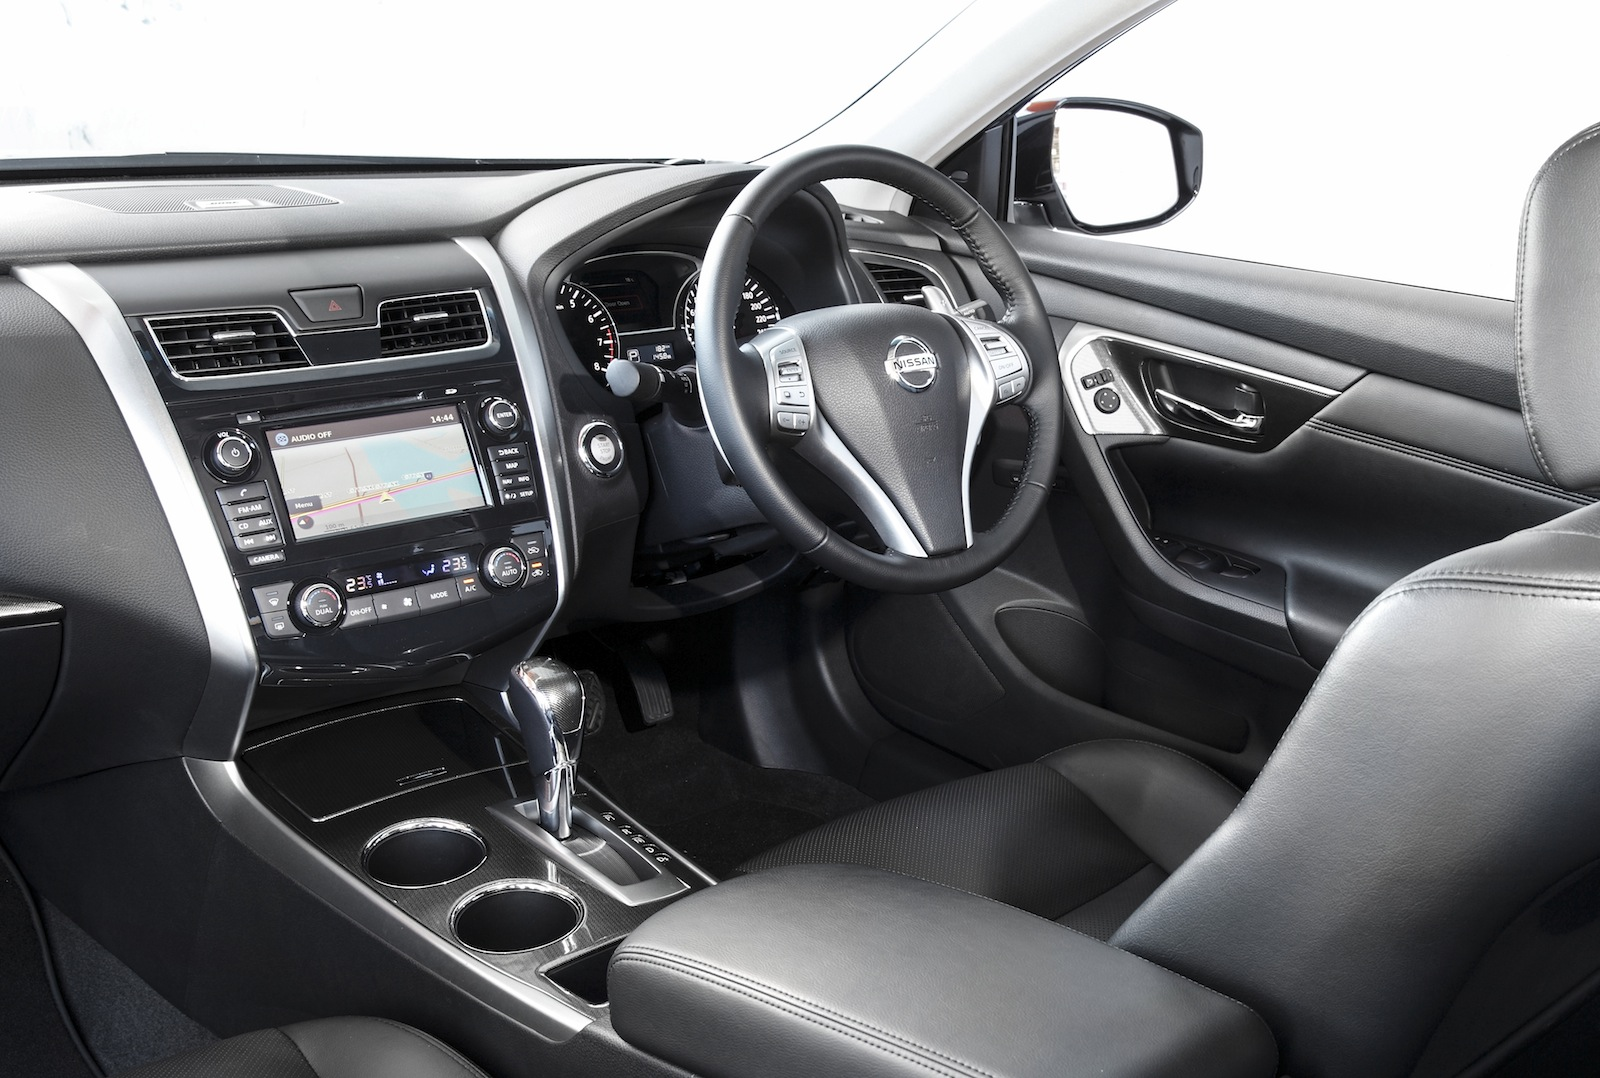 a review of nissan altima The 2013 nissan altima has evolved not conservatively, but boldly it is much better spiced, meatier and wider is this enough to claw sales away from camry.